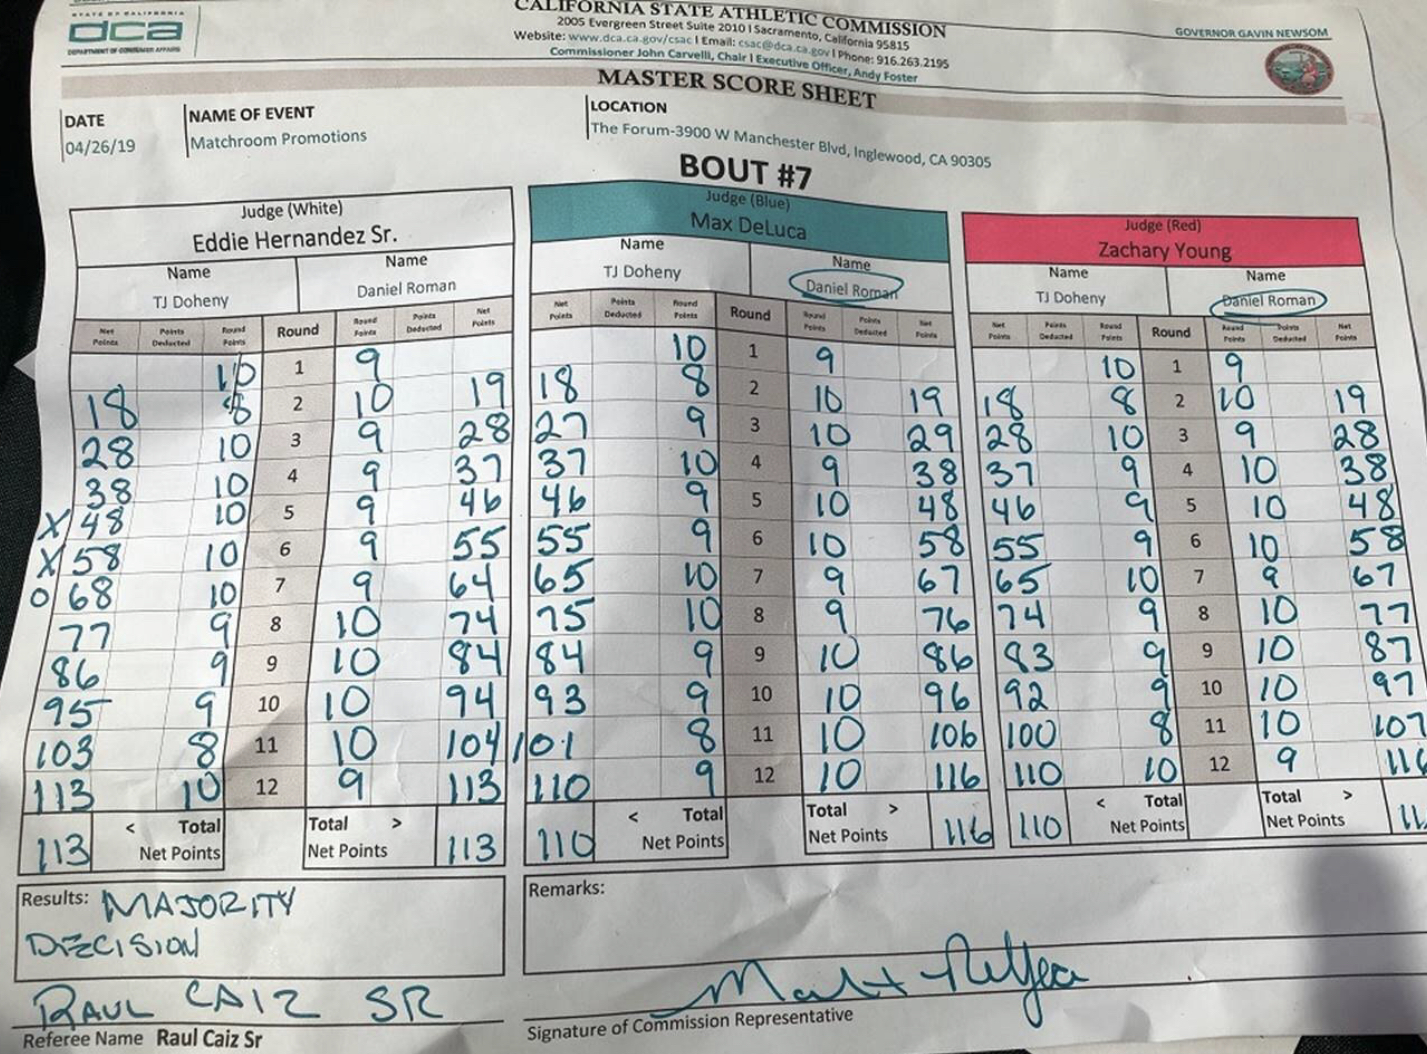 The Official Scorecards